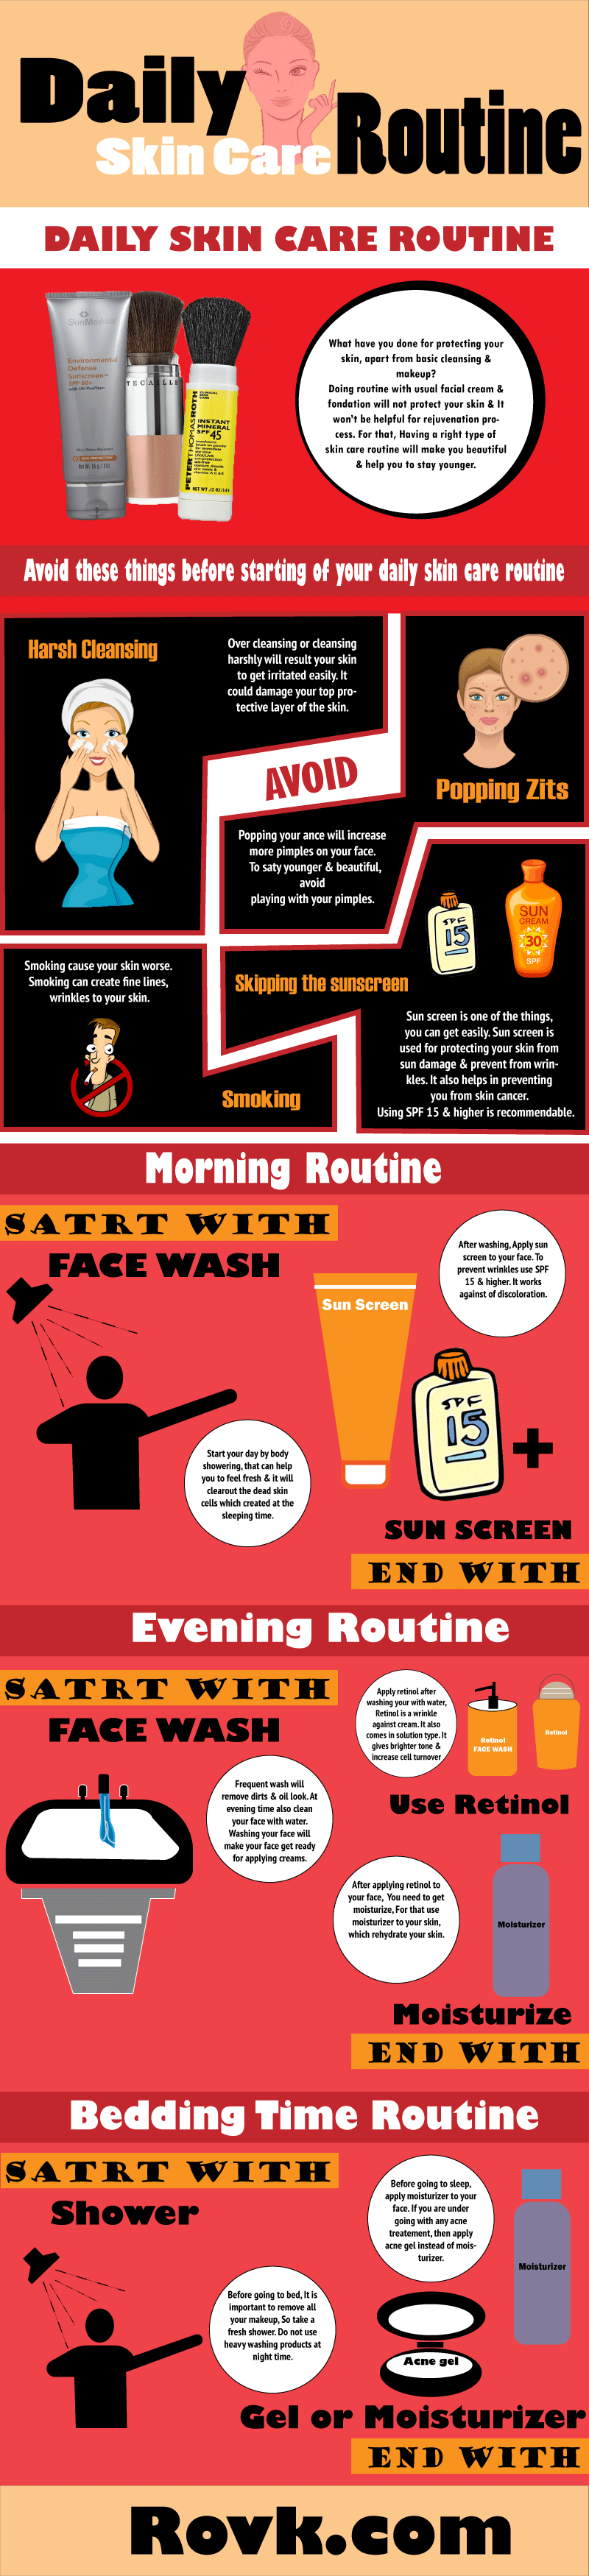 Daily Skin Care Routine